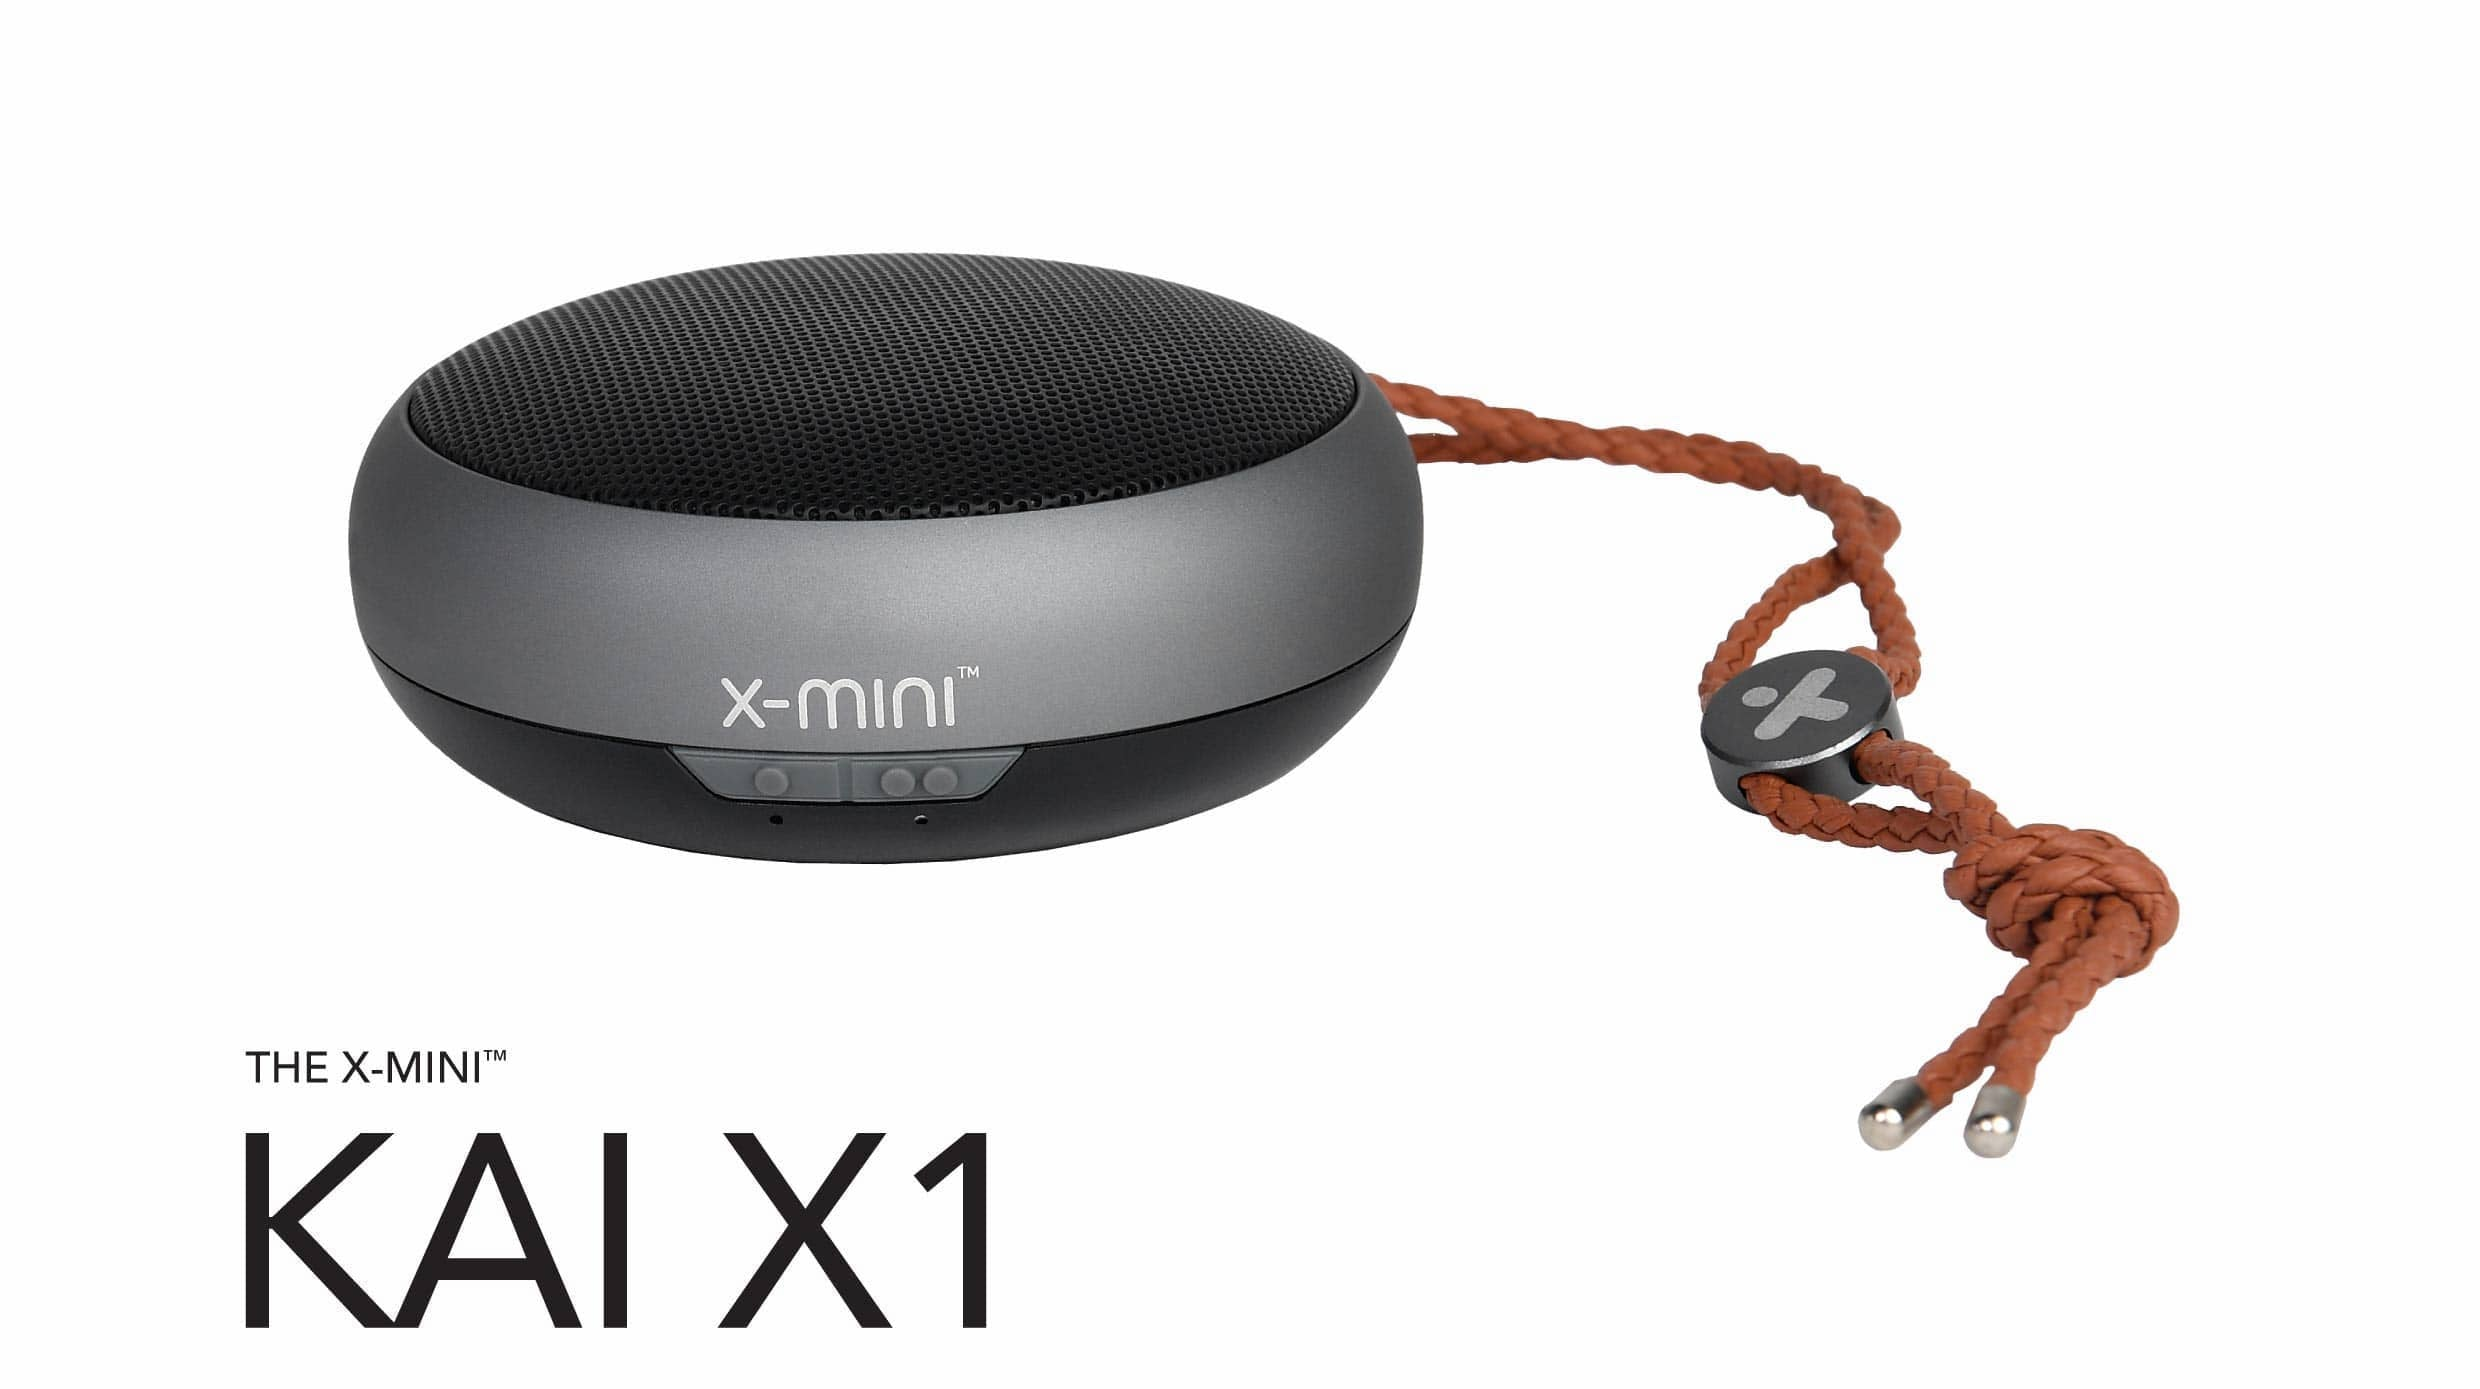 X-mini-Kai-X1-True-Wireless-Bluetooth-Portable-Speaker